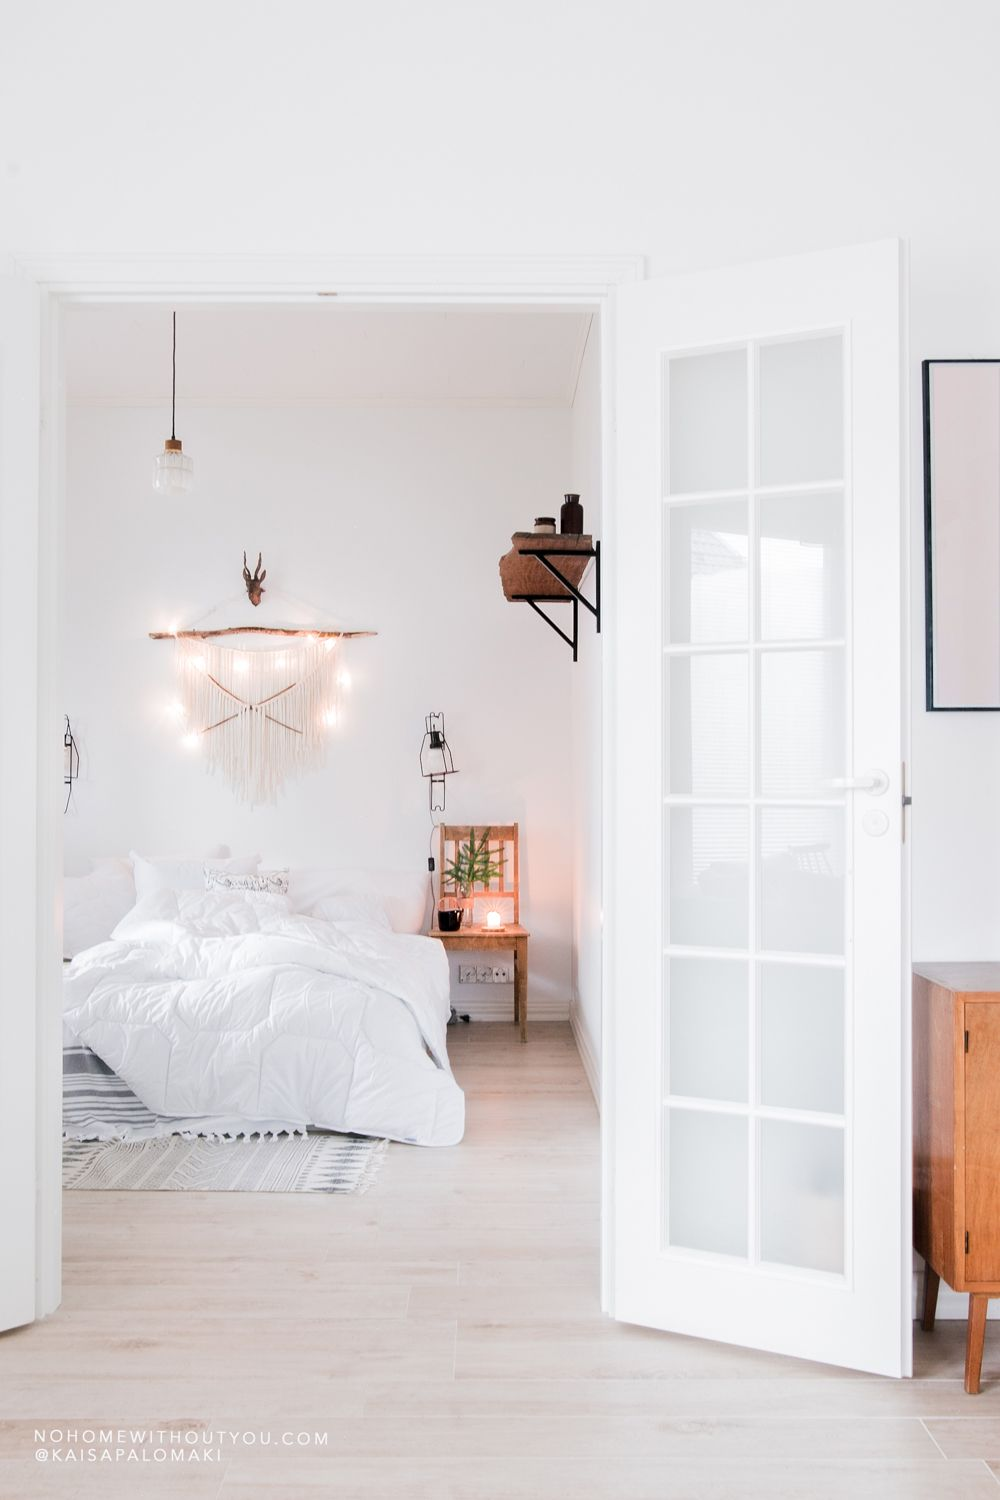 No home without you blog bedrooms pinterest winter bedroom